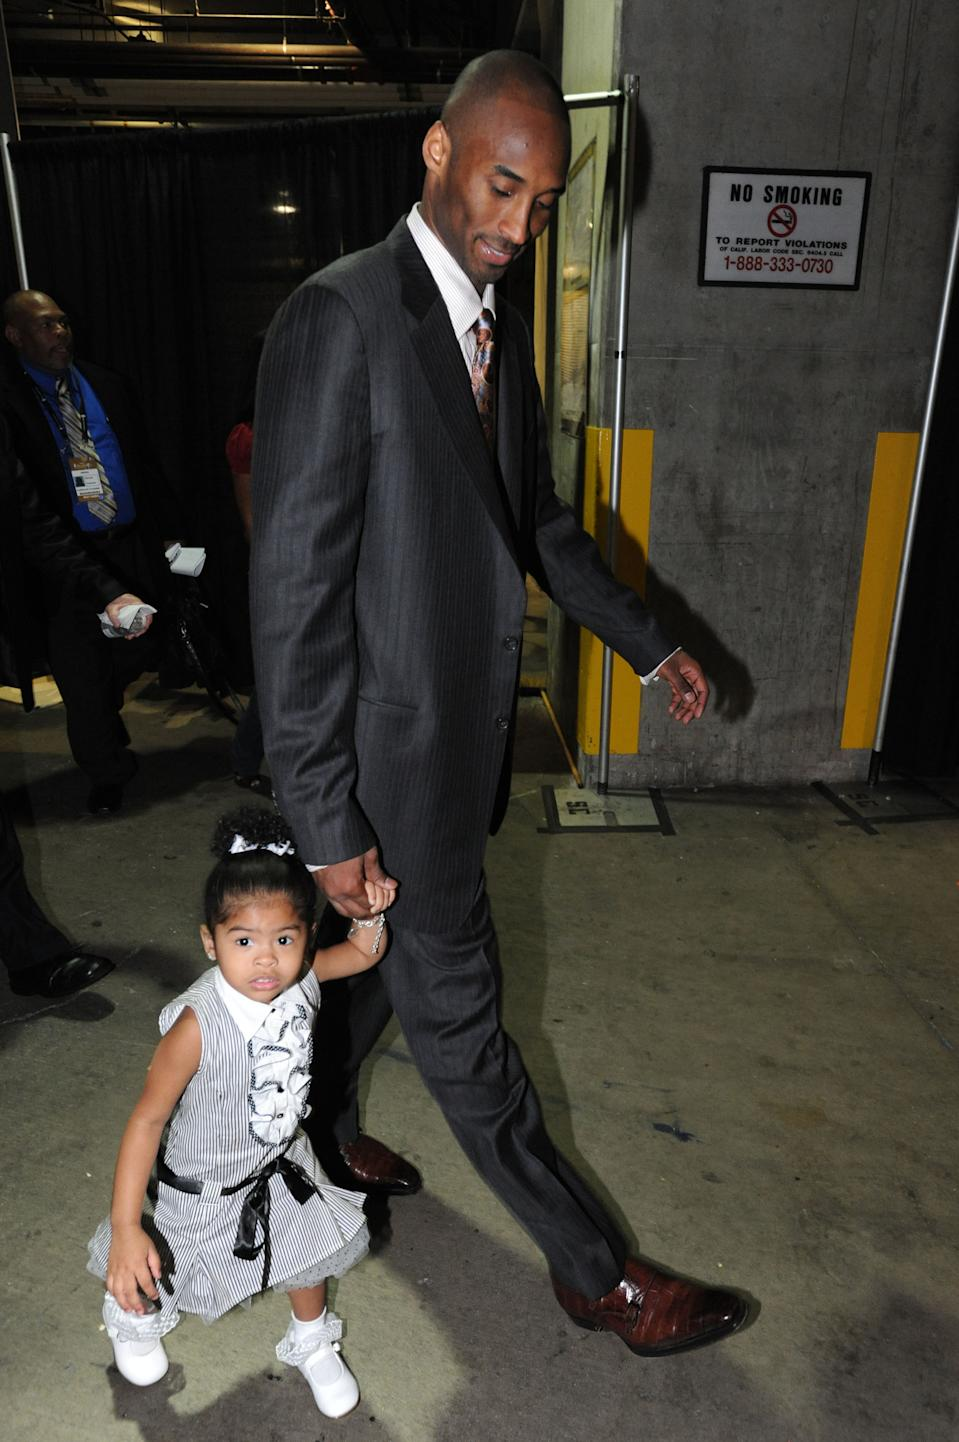 Kobe Bryant #24 of the Los Angeles Lakers walks out of the arena with daughter Gianna following his team's victory over the Boston Celtics in Game Five of the 2008 NBA Finals at Staples Center June 15, 2008 in Los Angeles, California. (Photo by Andrew D. Bernstein/NBAE via Getty Images)